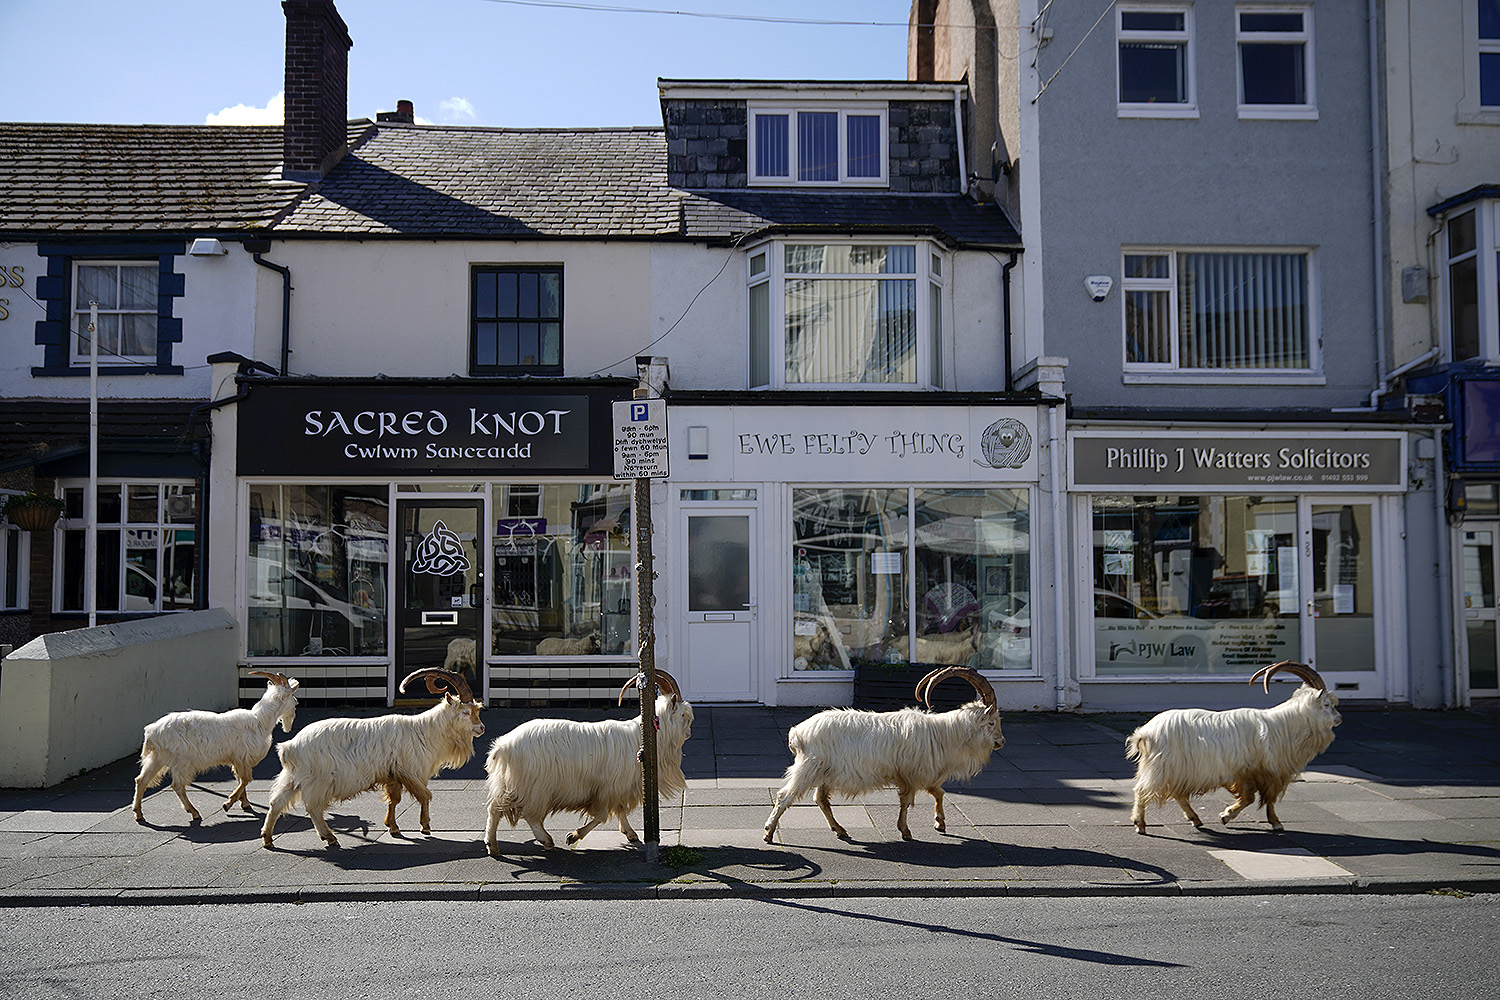 Mountain goats roam the deserted streets of Llandudno, Wales, on March 31. The goats normally live on the rocky Great Orme headland, but the herd was drawn to the town by the lack of people and tourists during quarantine measures. Christopher Furlong/Getty Images